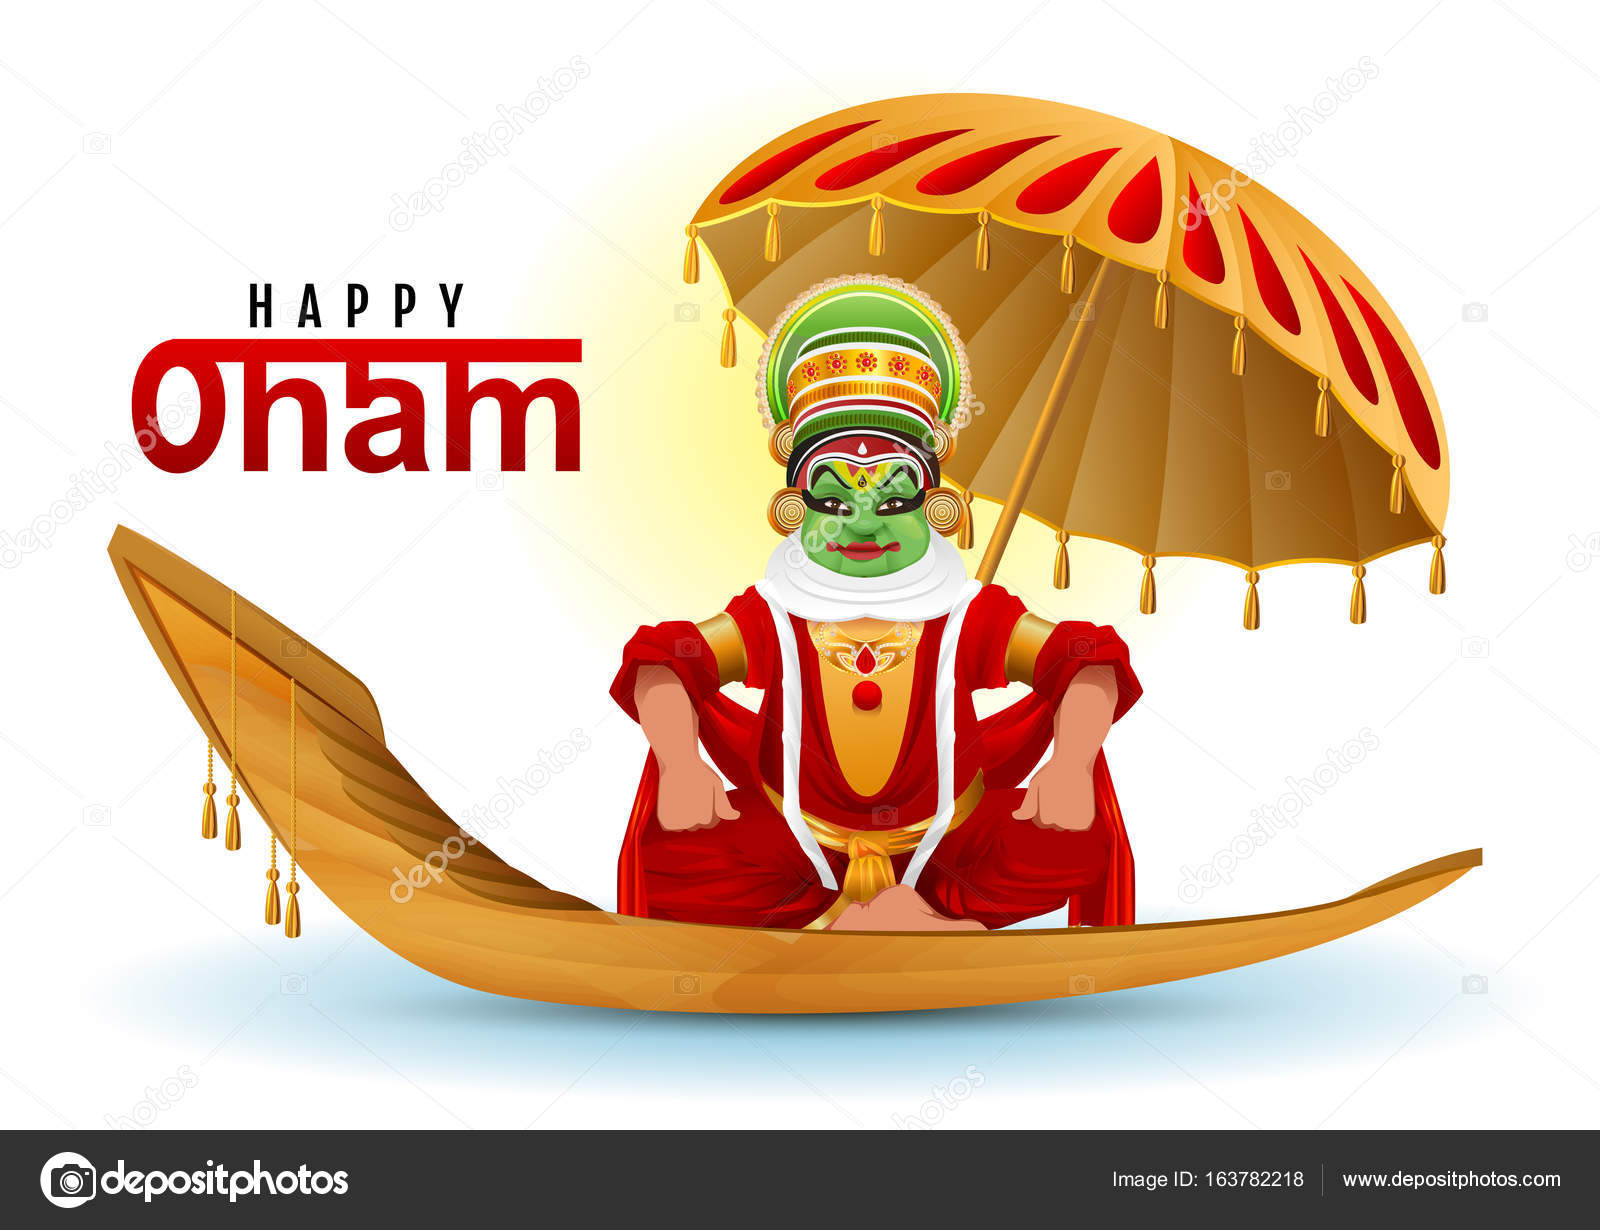 Happy onam greeting card hindu festival of kerala in india happy onam greeting card hindu festival of kerala in india mahabali king returns swimming kristyandbryce Image collections